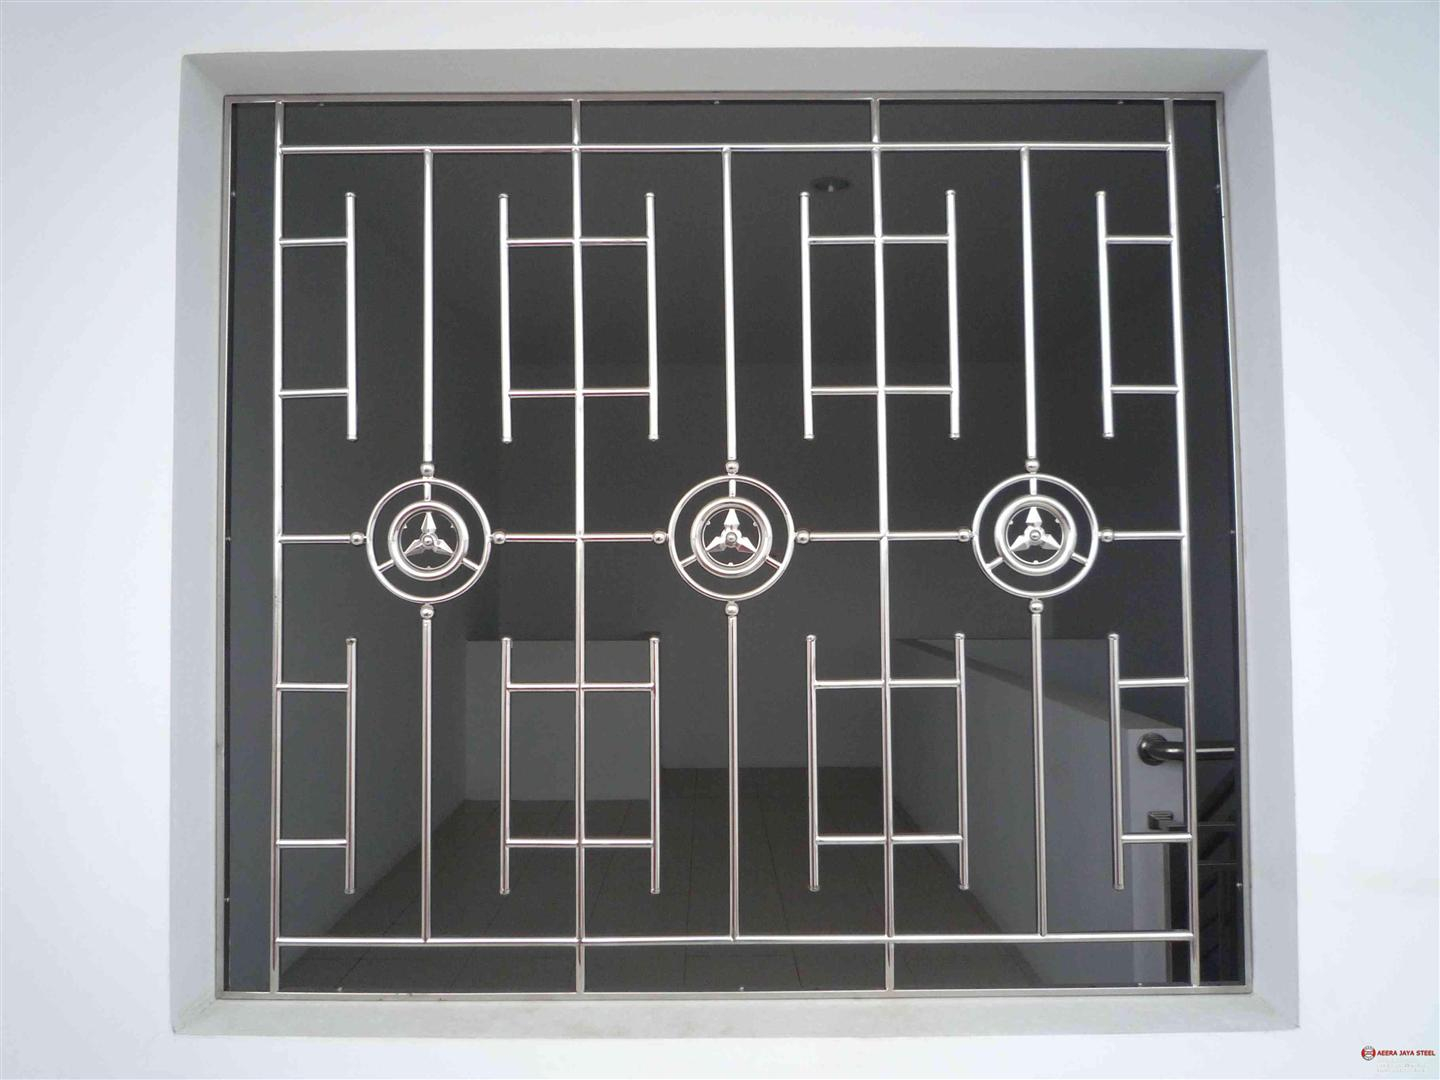 Modular Modern Window Grill Designs Free Images - Condointeriordesign throughout High Quality Window Design Pictures